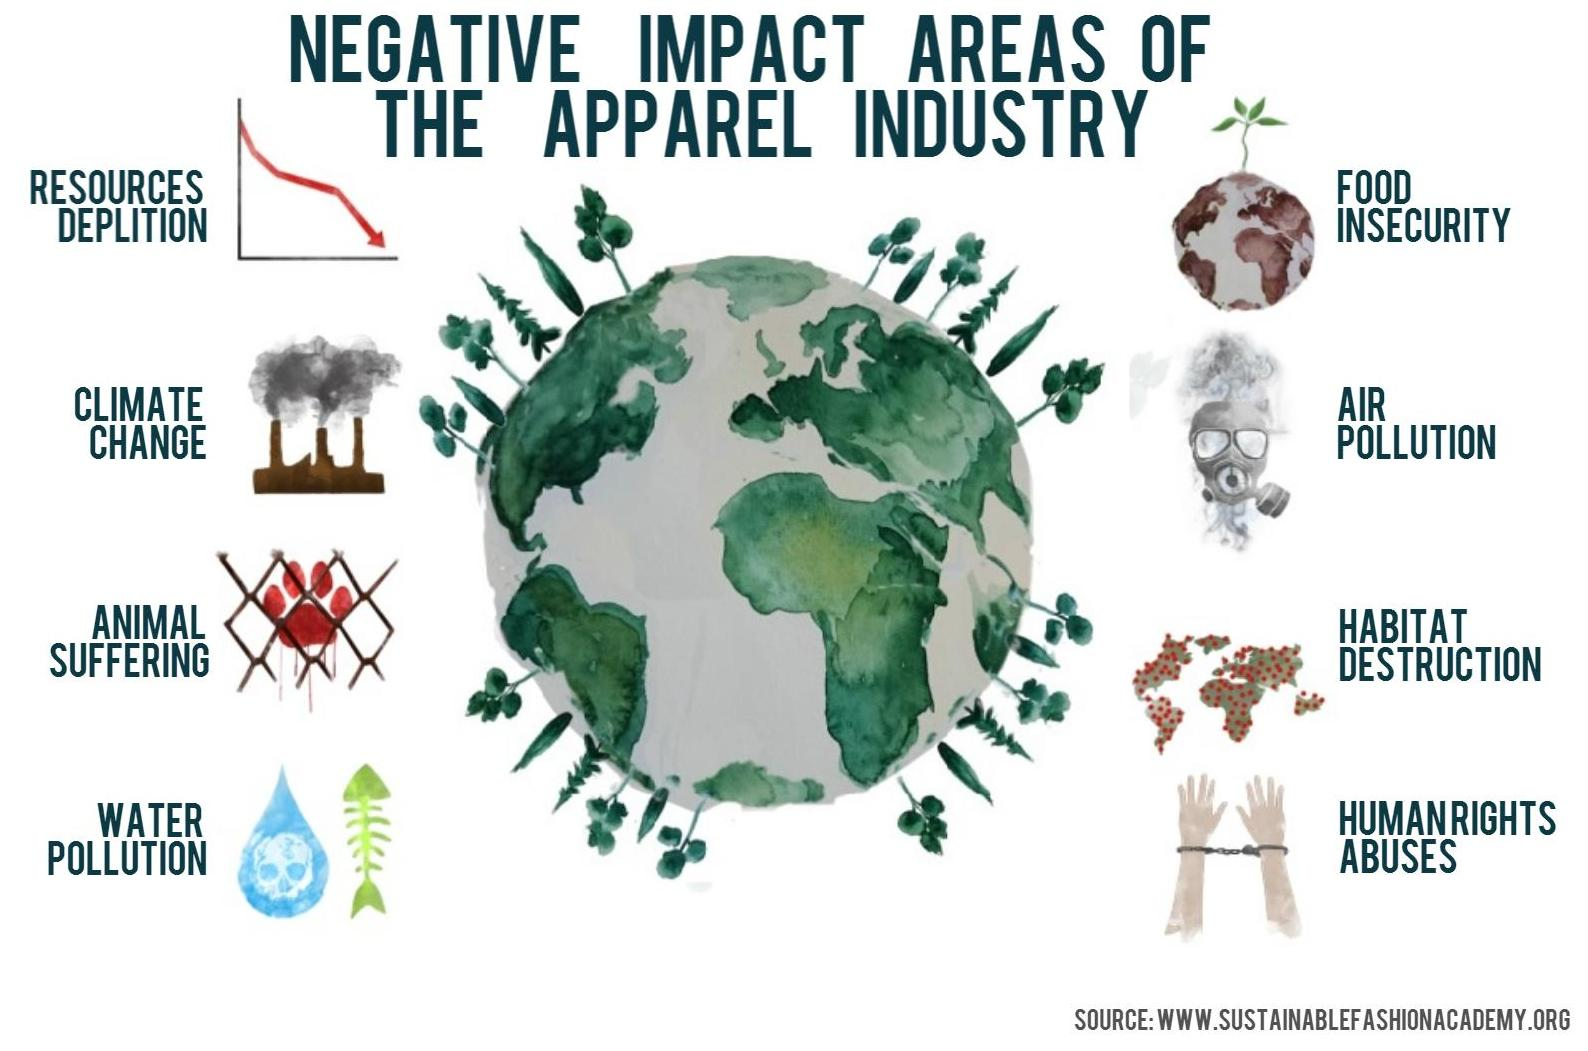 WOODSTRK Infographic showing the negative impacts of the apparel industry